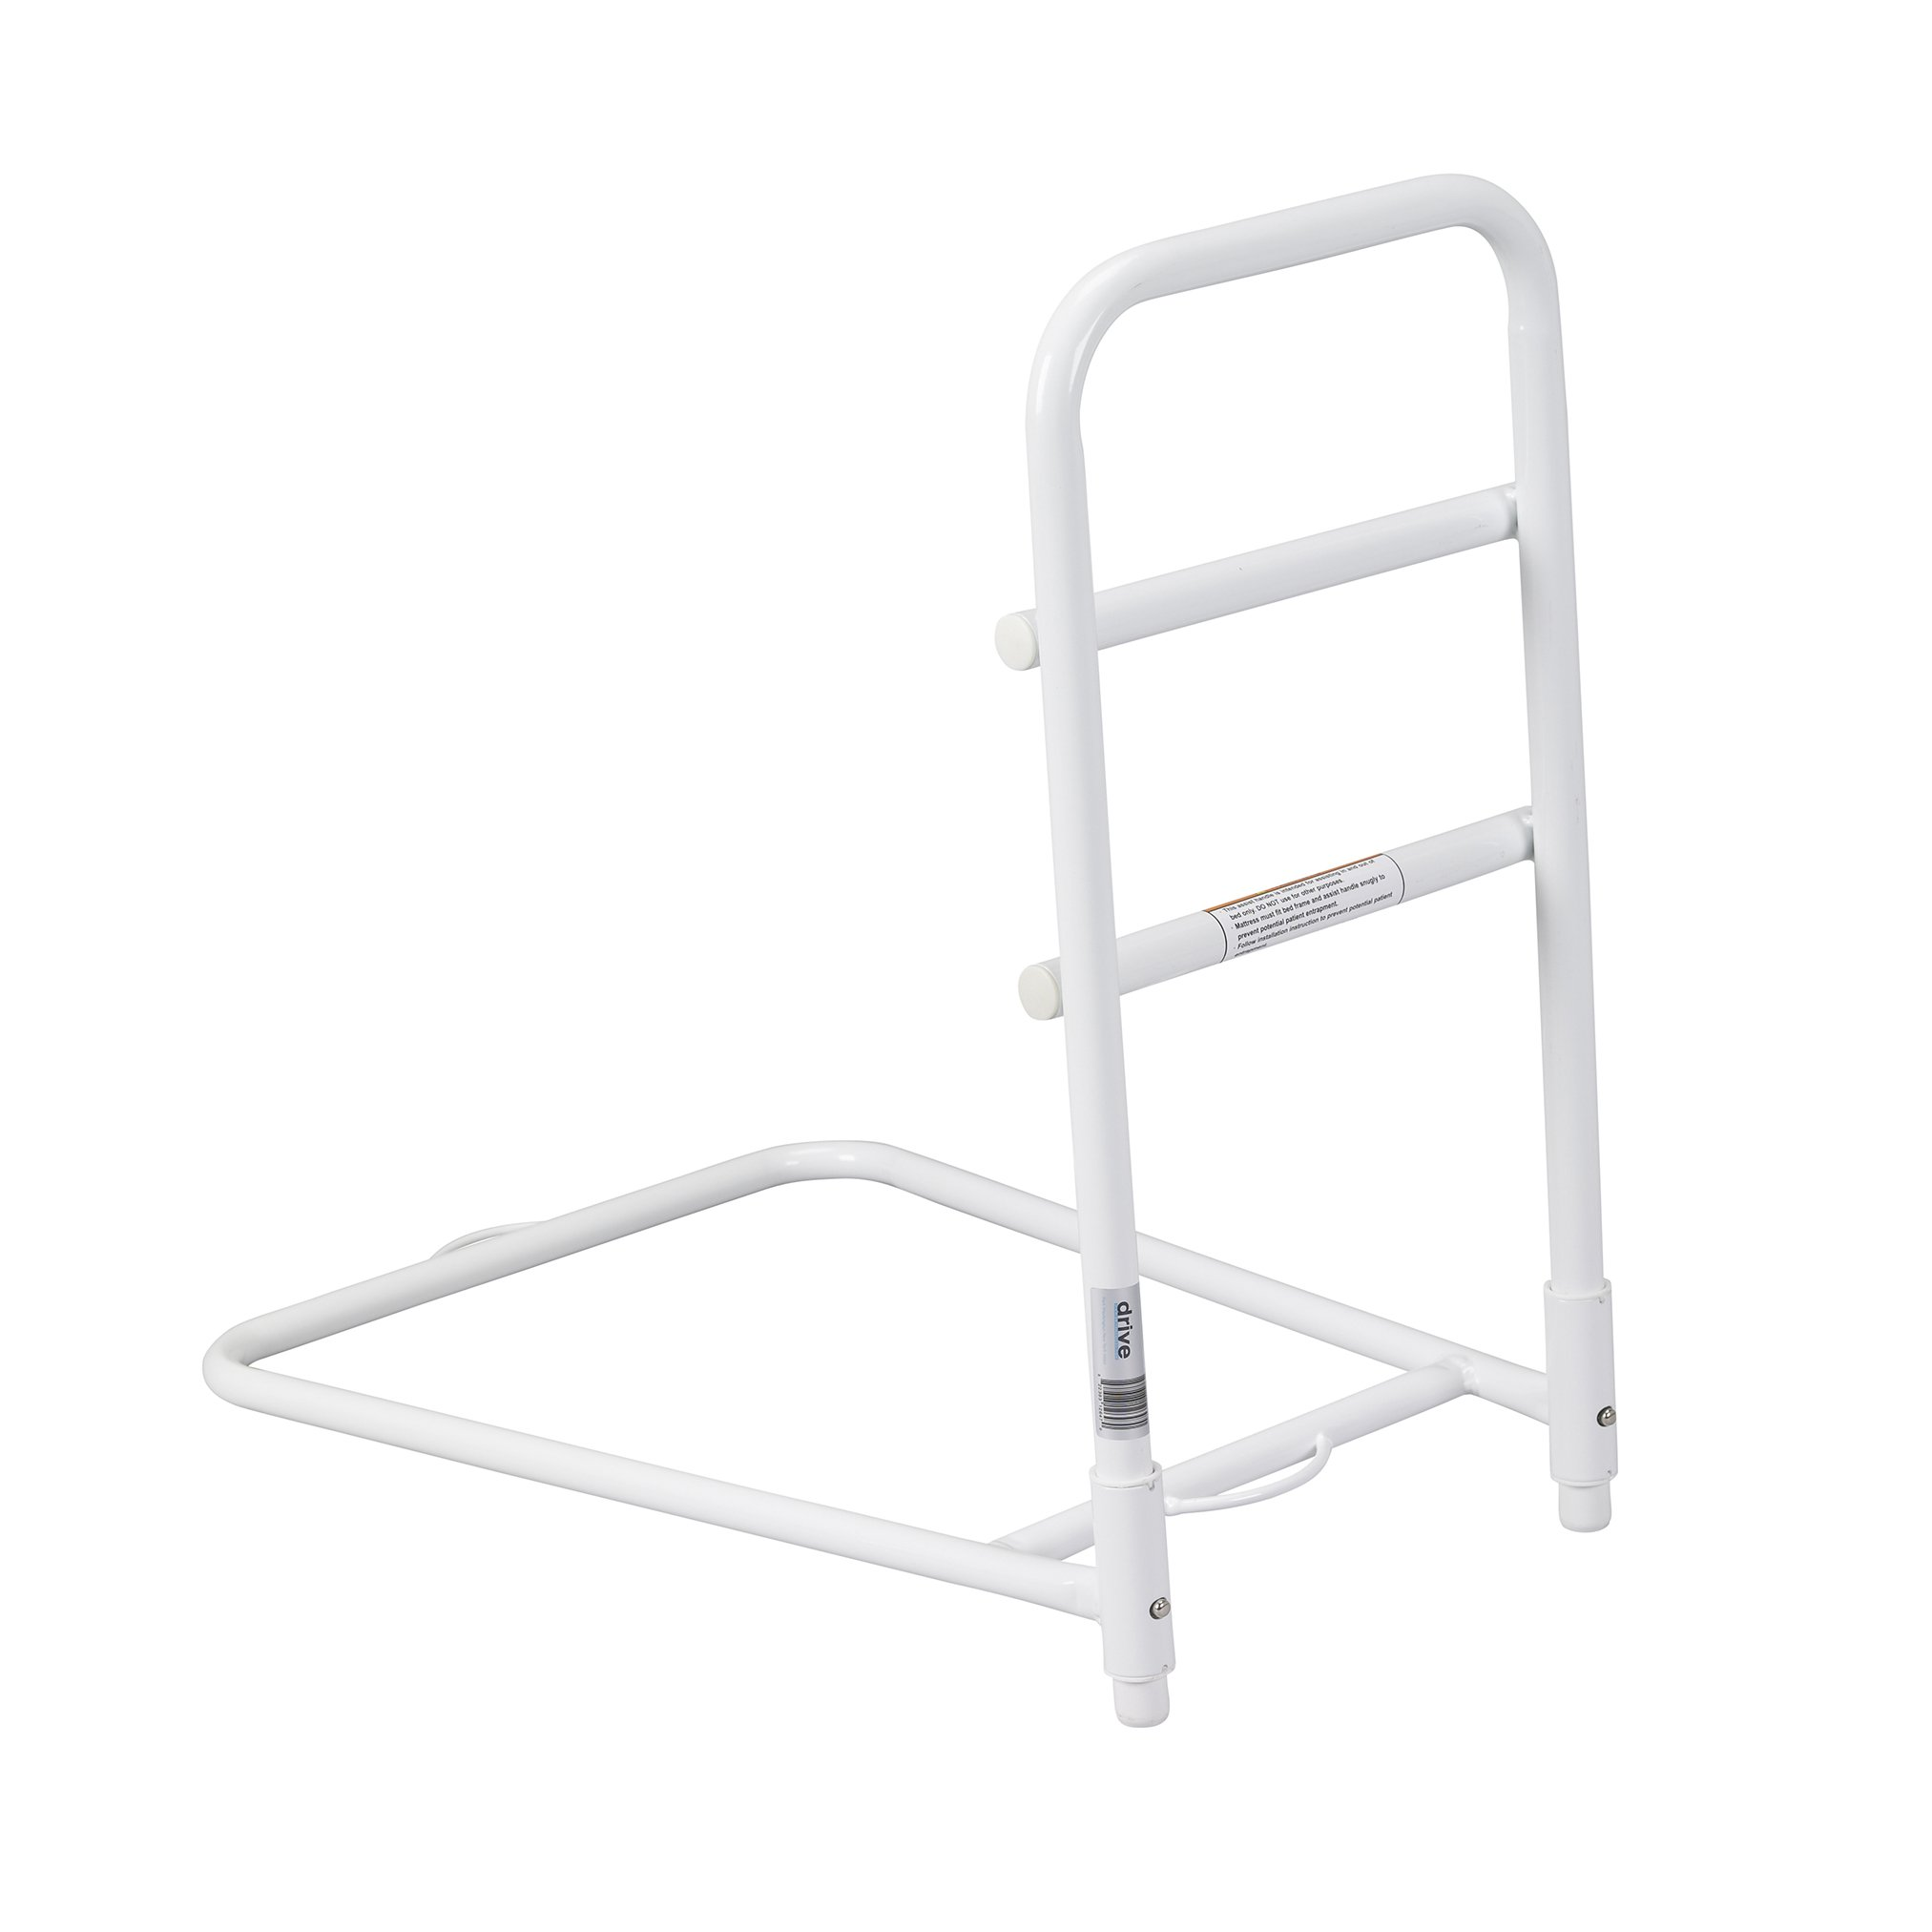 Drive Medical Home Bed Assist Rail, Bed Board Combo Without Bed Board by Drive Medical